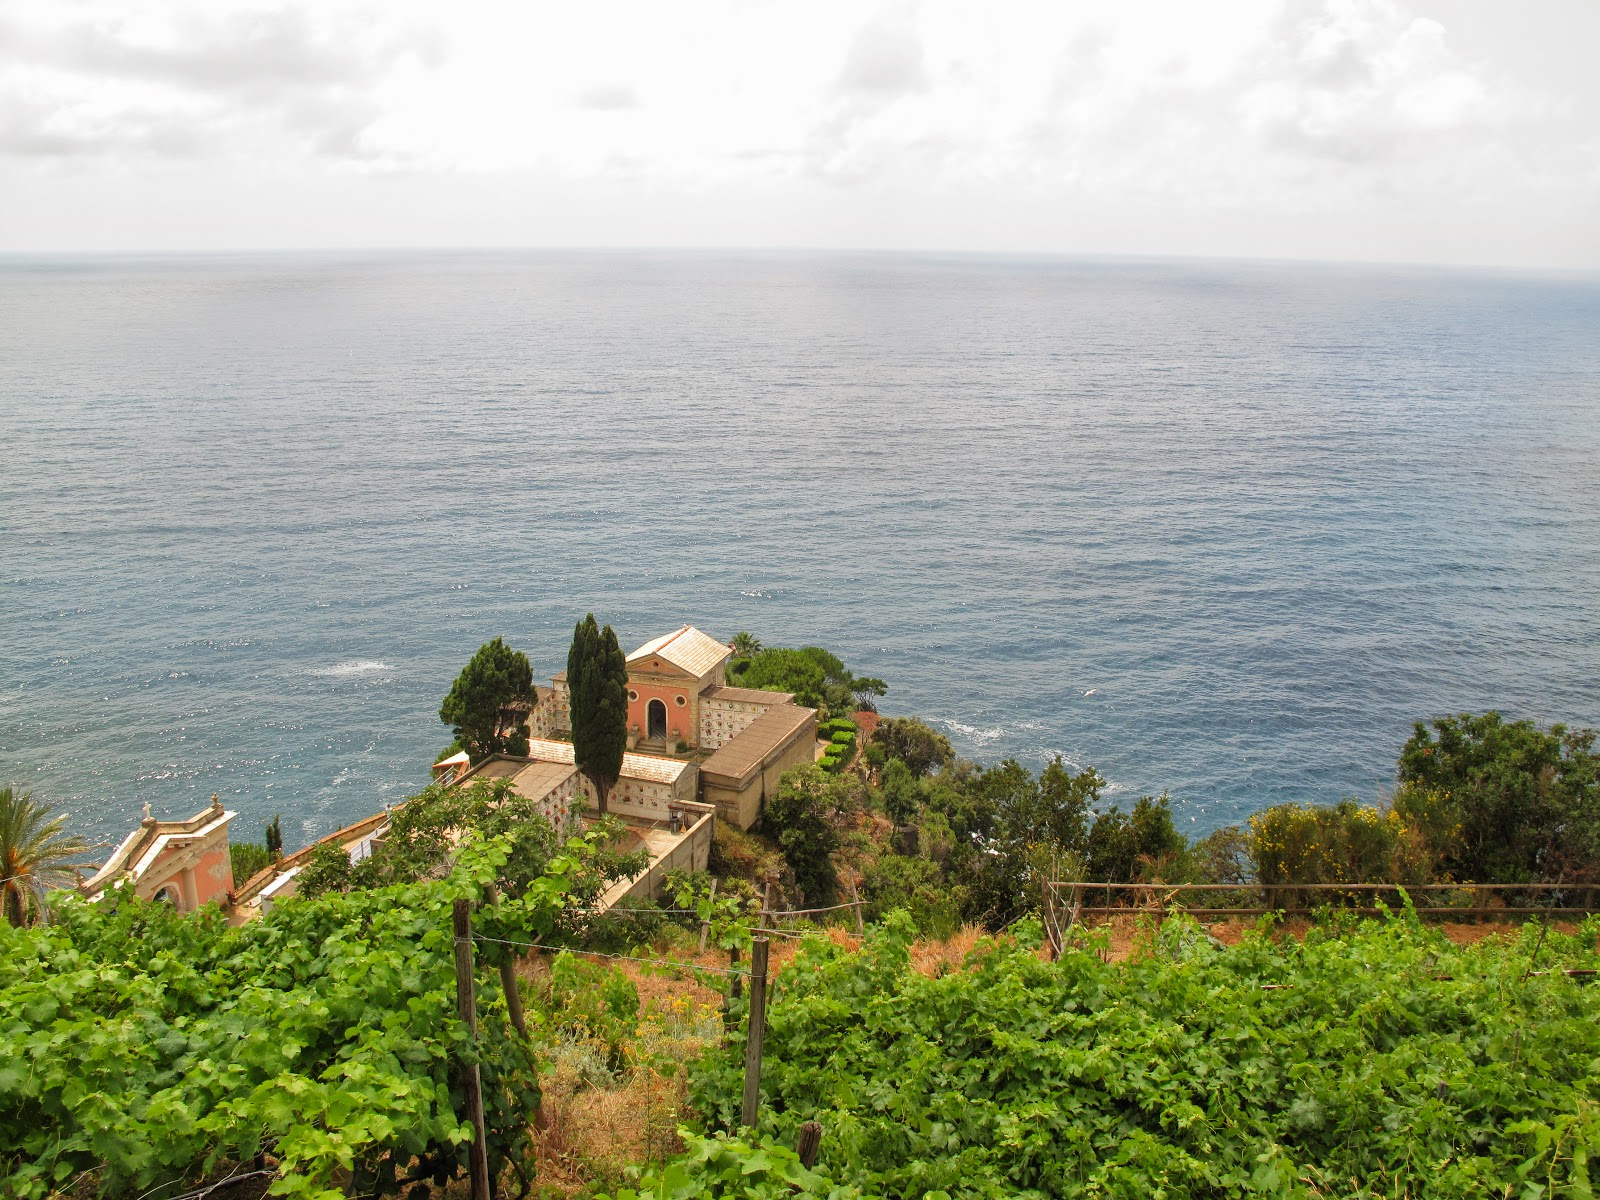 The view from a cliff on the Cinque Terre, Italy.